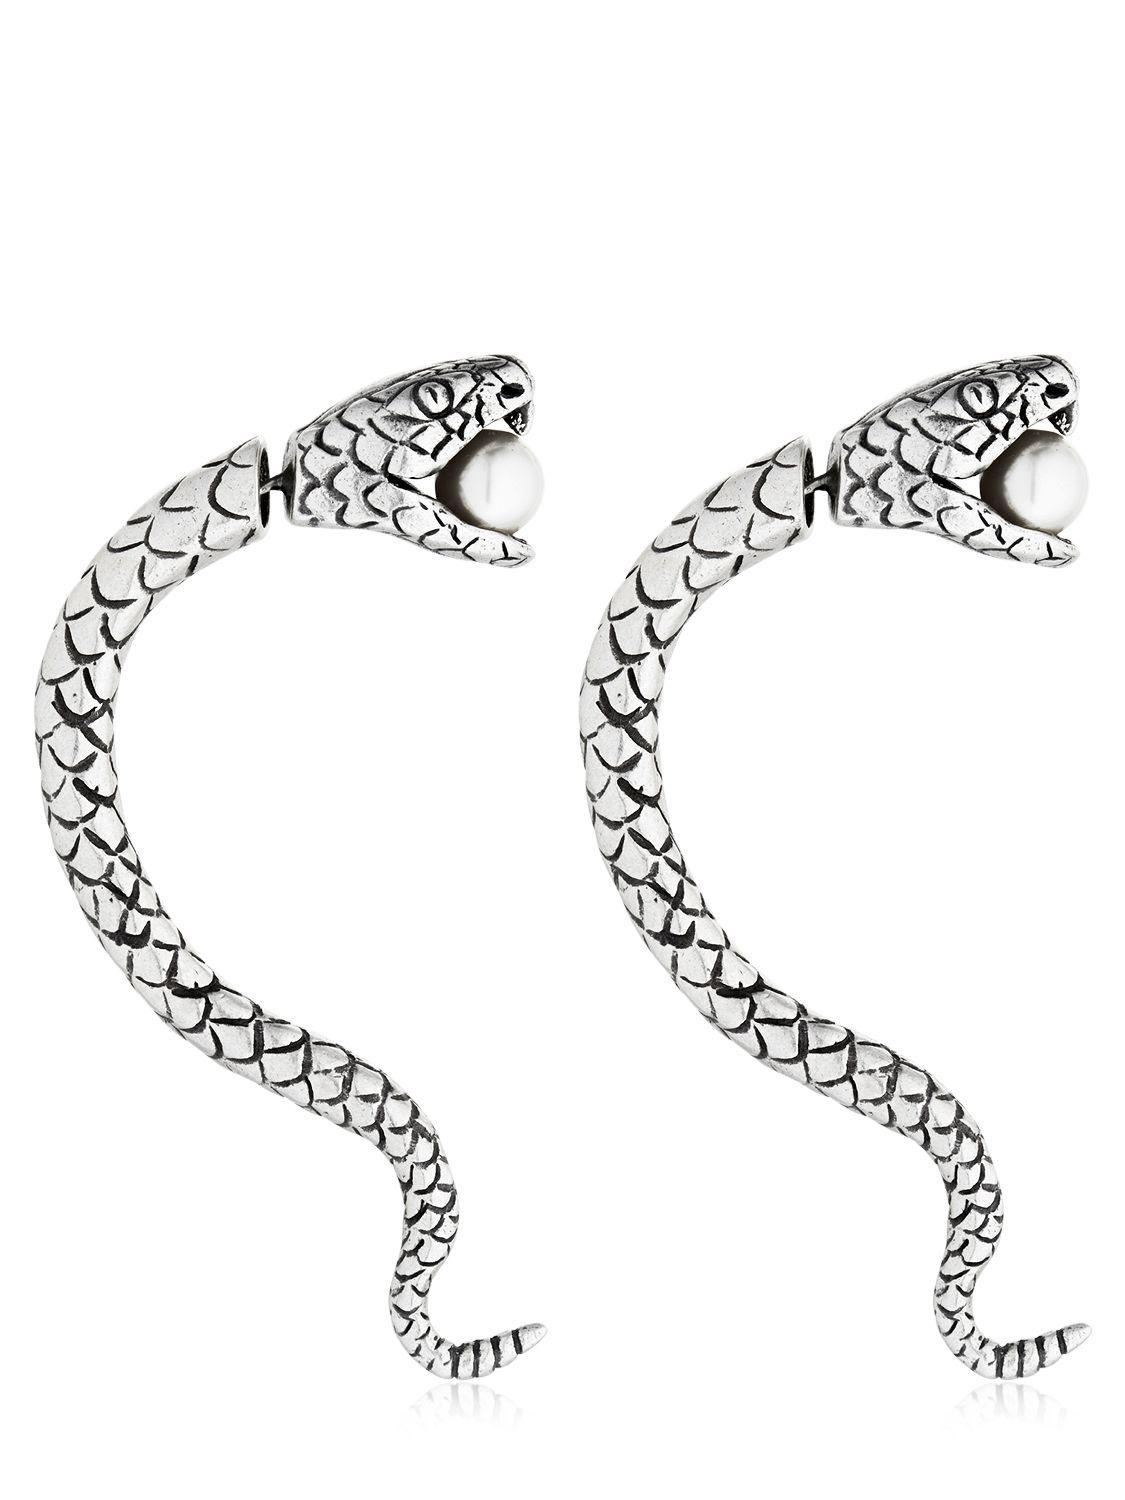 Saint Laurent Snake Earrings With Imitation Pearl in